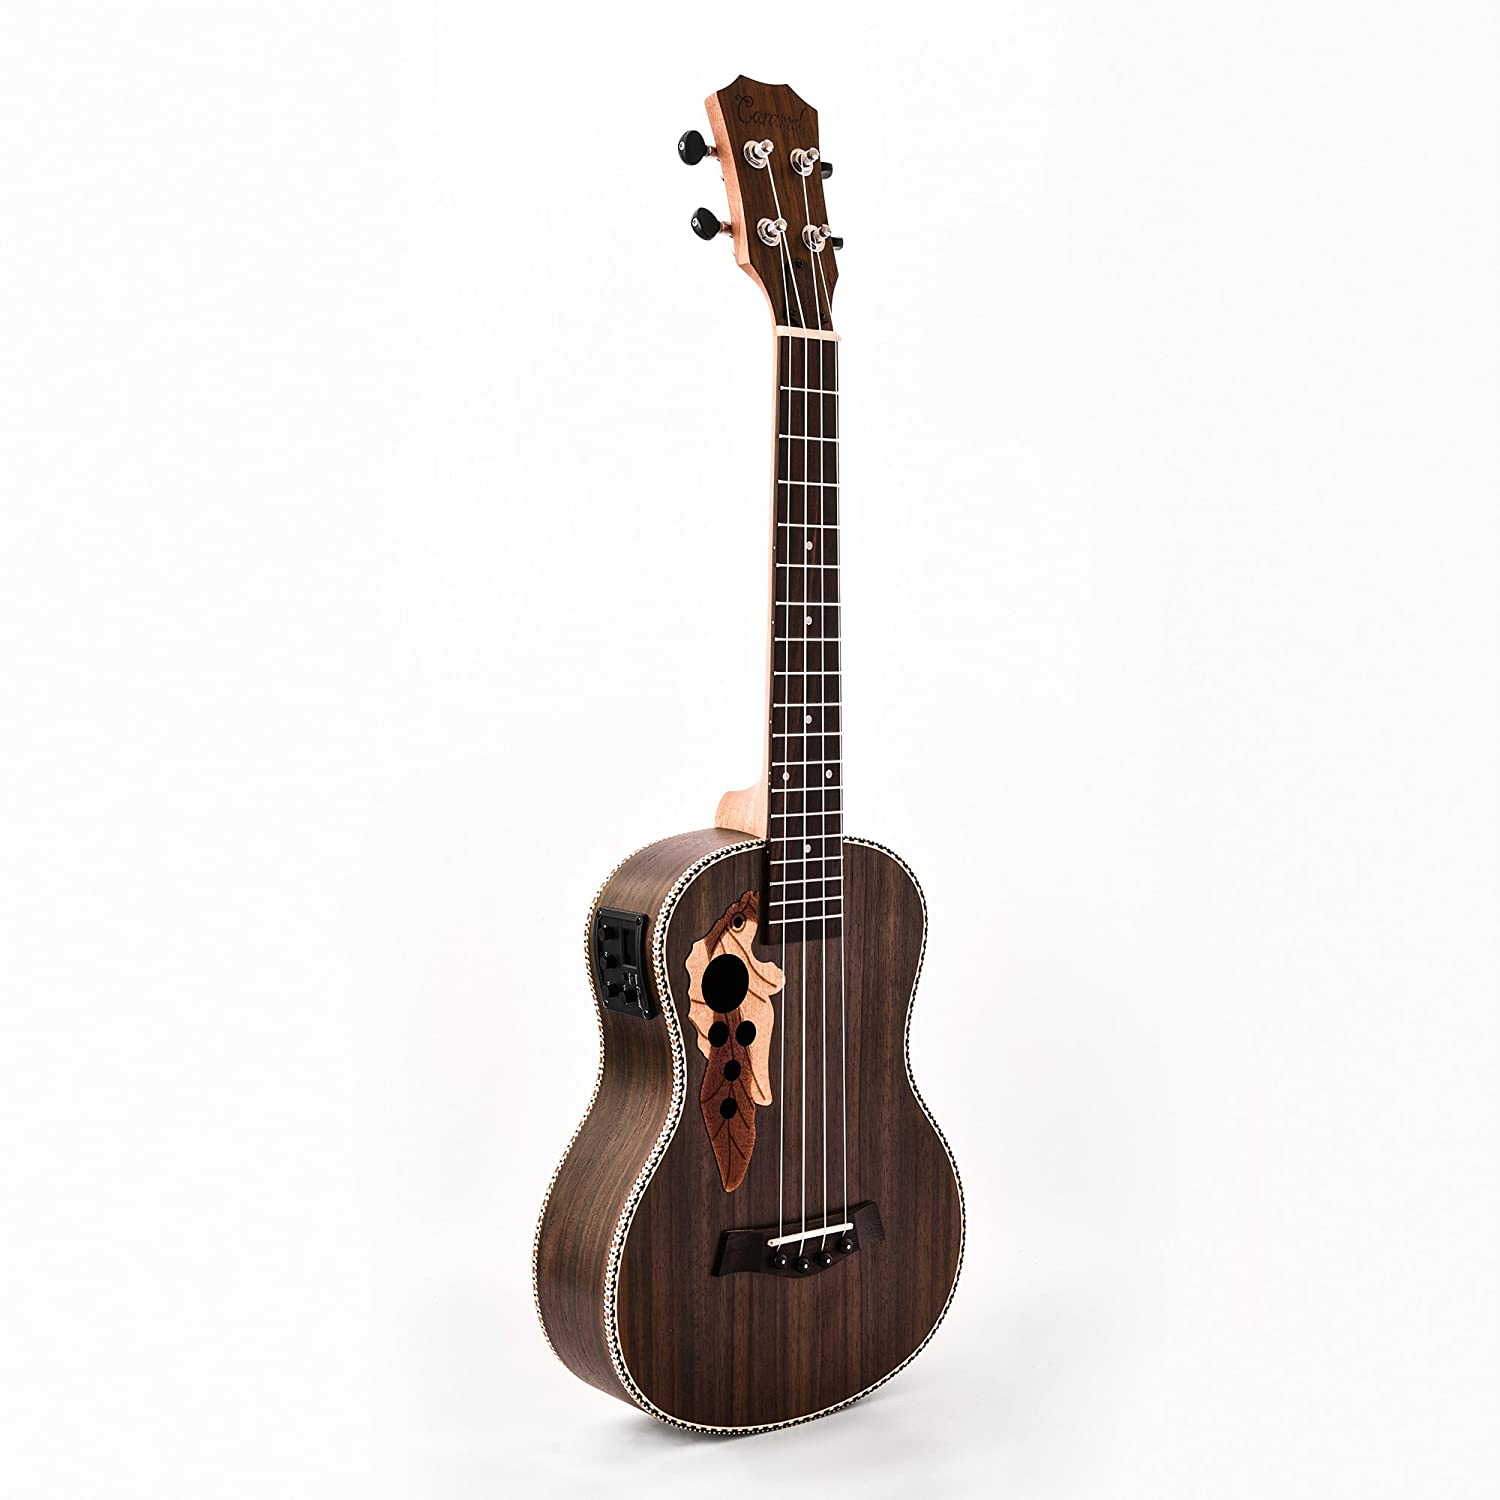 2. Caramel All Rosewood Baritone Acoustic Electric Ukulele